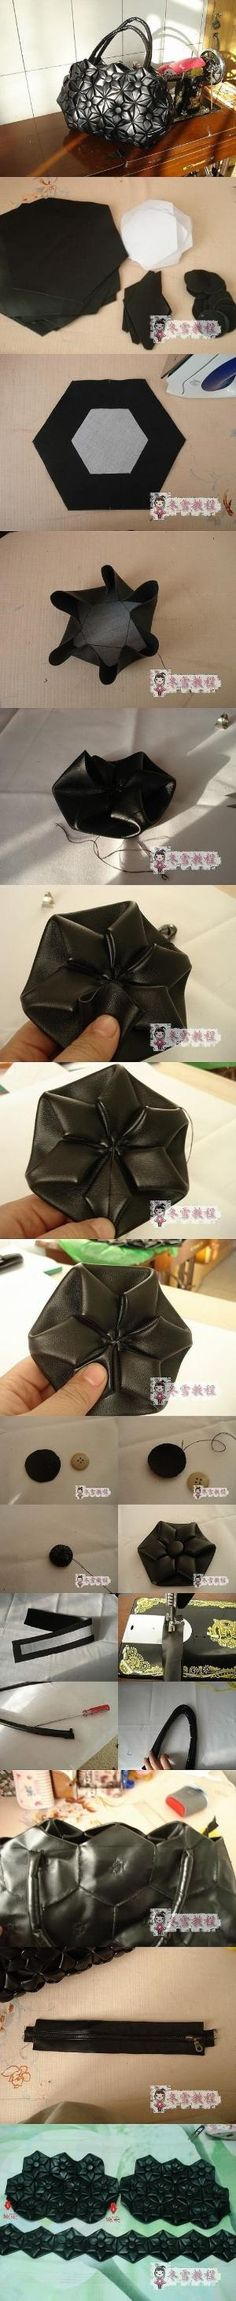 How to make Beautiful Fashion Handbag step by step DIY tutorial instructions, How to, how to do, diy instructions, crafts, do it yourself, d by Mary Smith fSesz